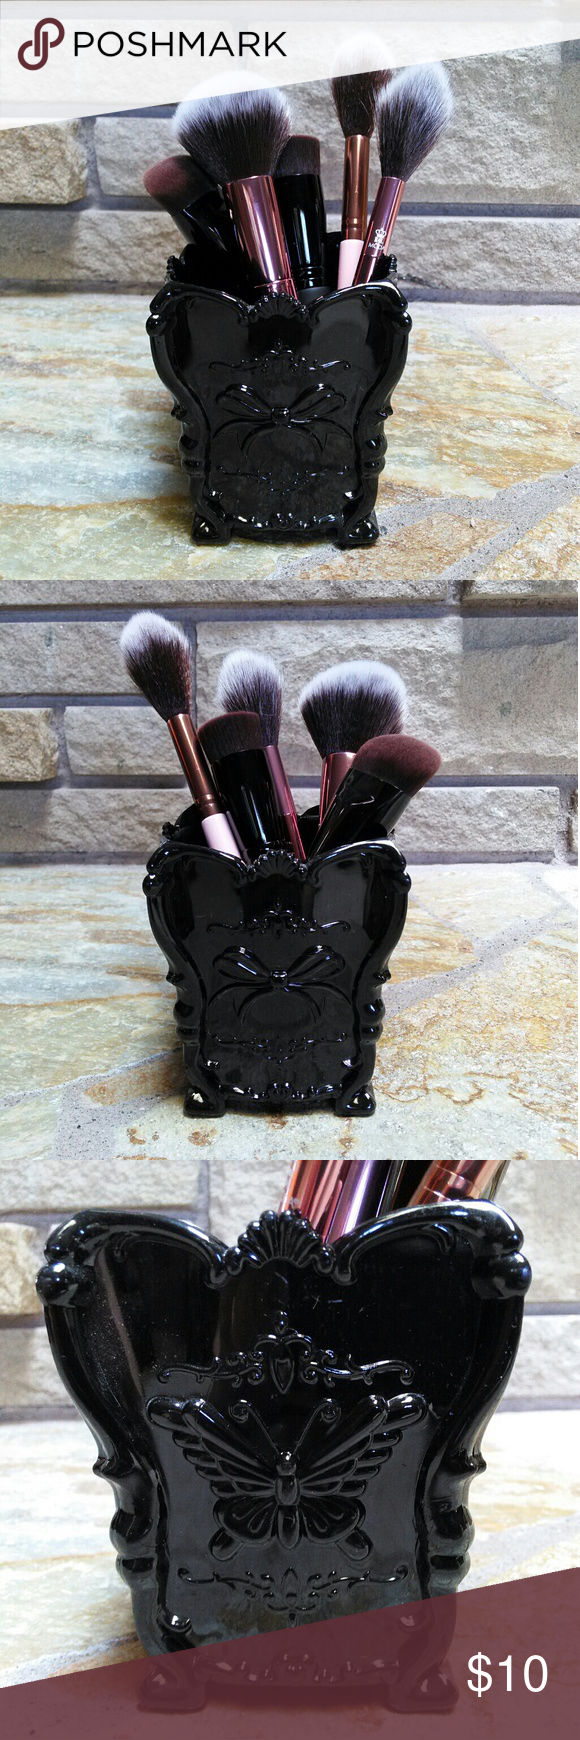 Black Gothic butterfly bow makeup brush holder Makeup